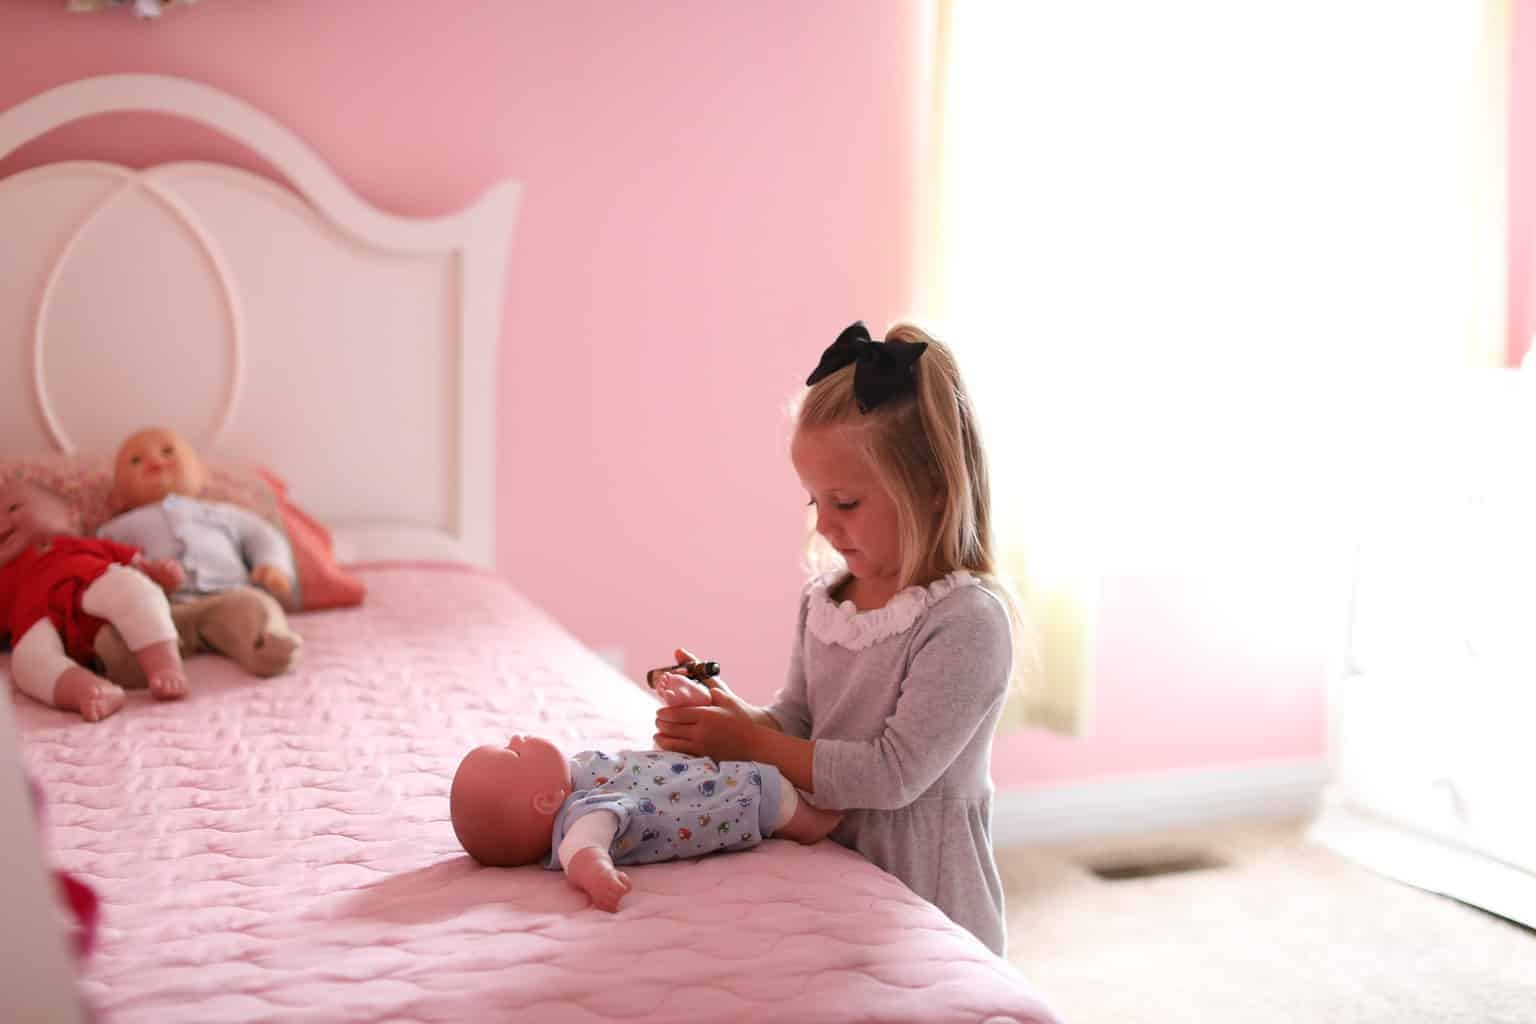 A little girl putting essential oil roller bottle on a plastic baby doll.